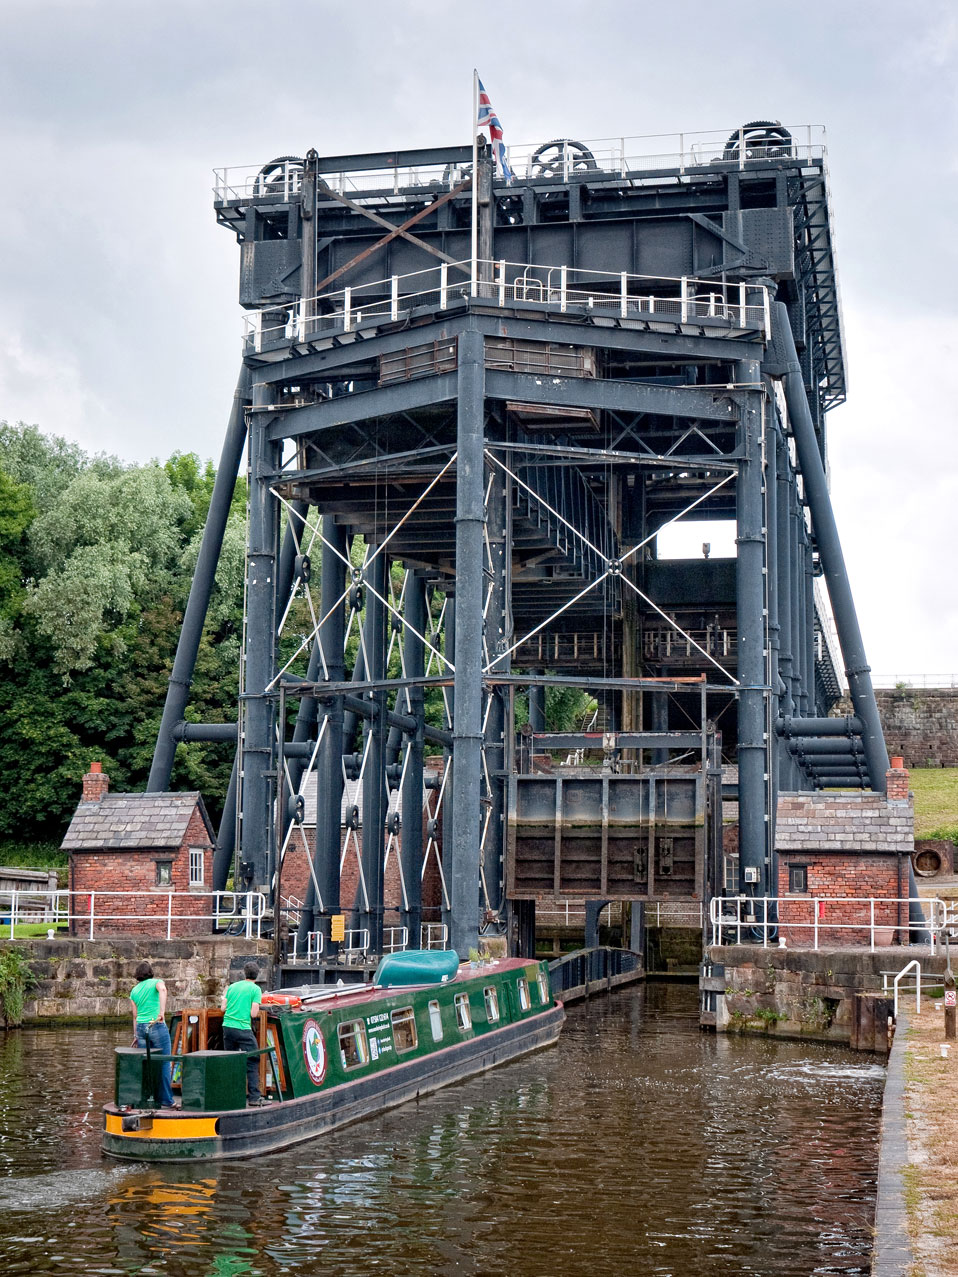 The hotel boat Wandering Duck enters the lift after a trip up the River Weaver